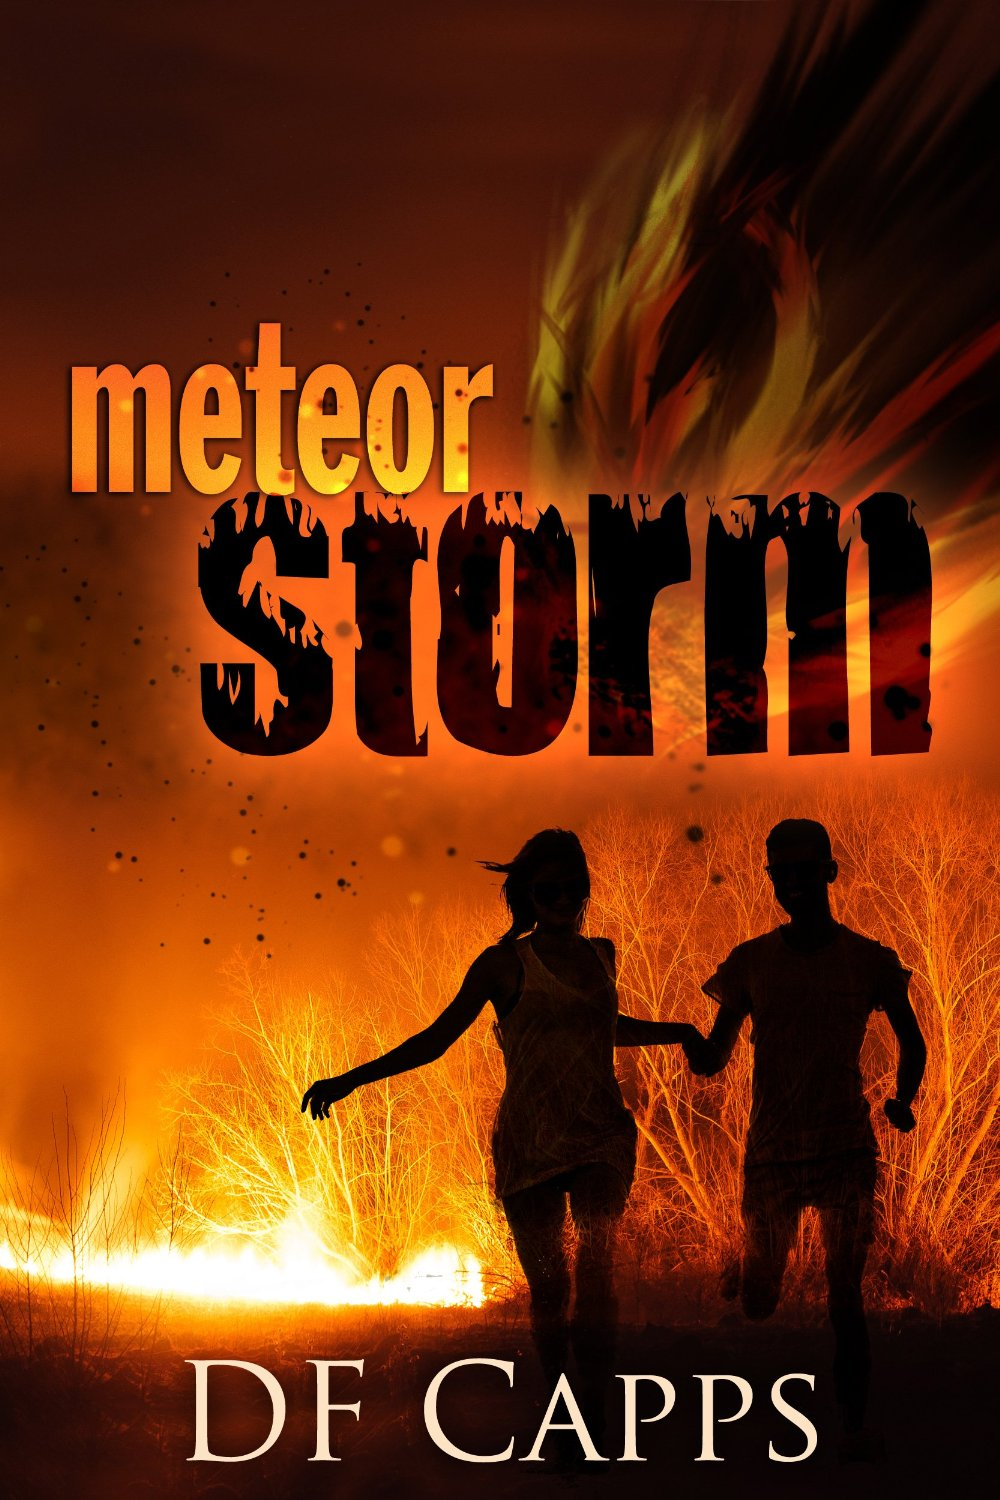 Book Review by Wendy Strain of Meteor Storm by David Capps